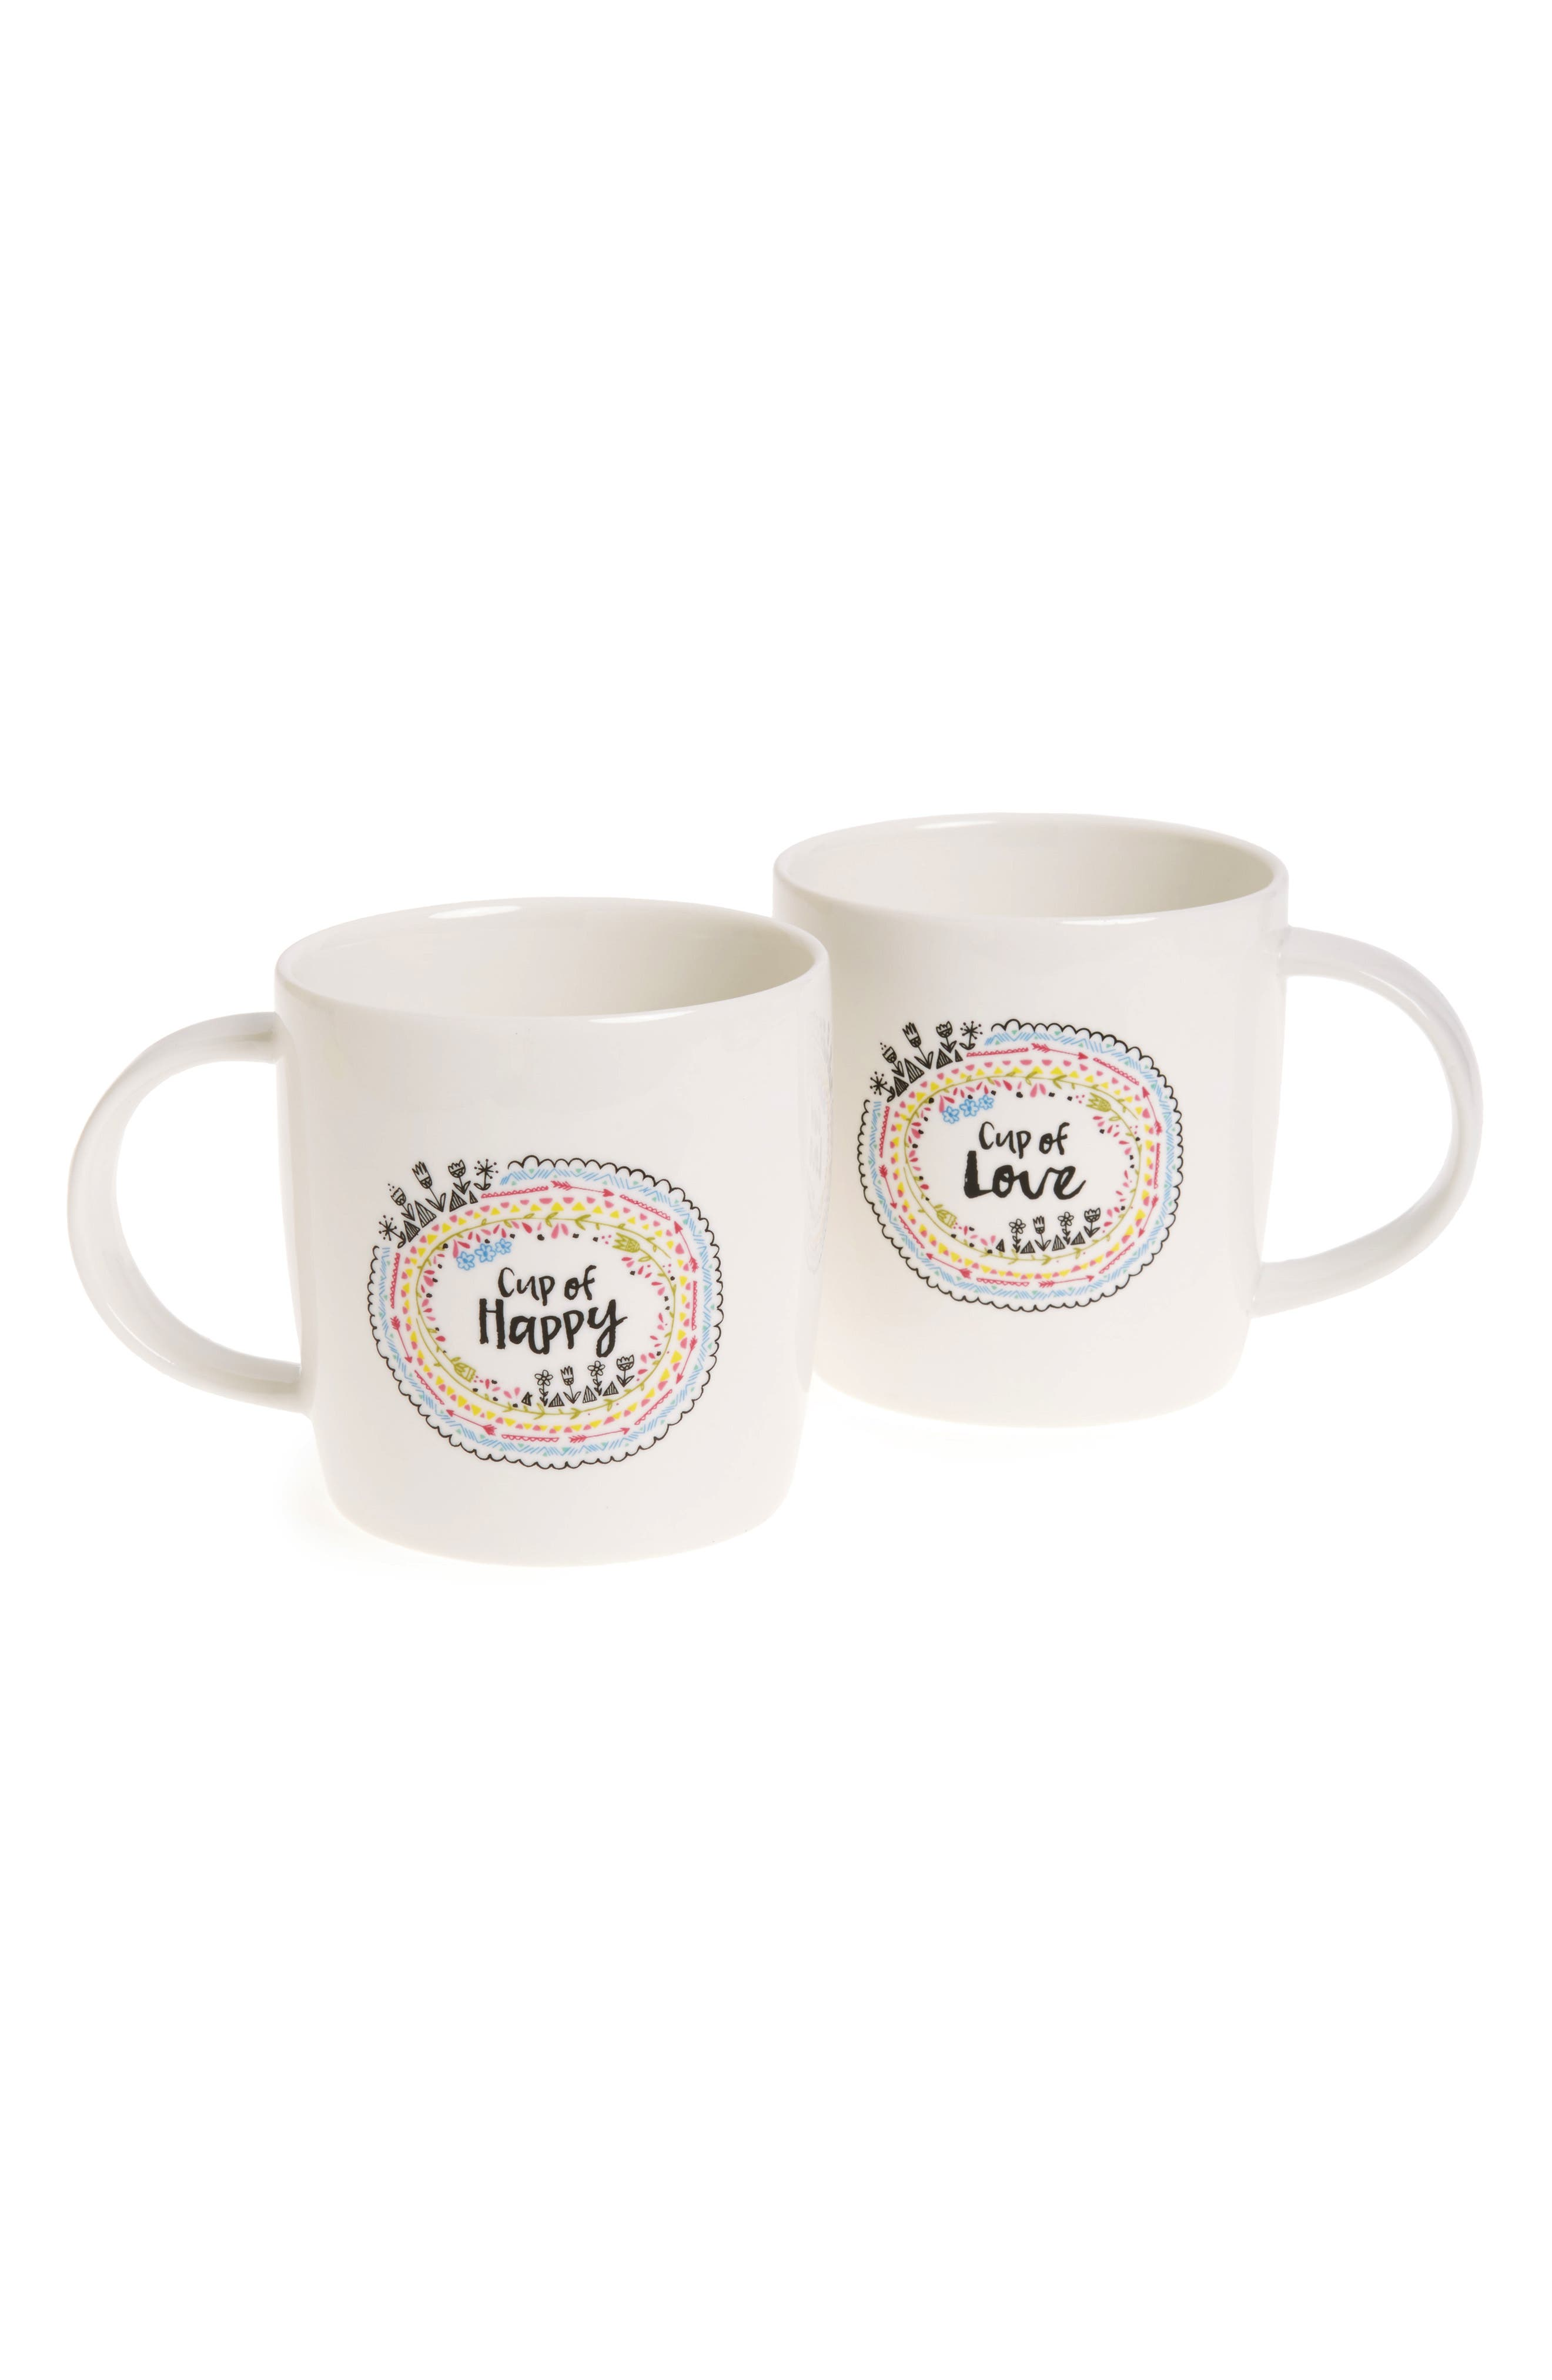 Cup of Happy & Cup of Love Set of 2 Mugs,                         Main,                         color, 900